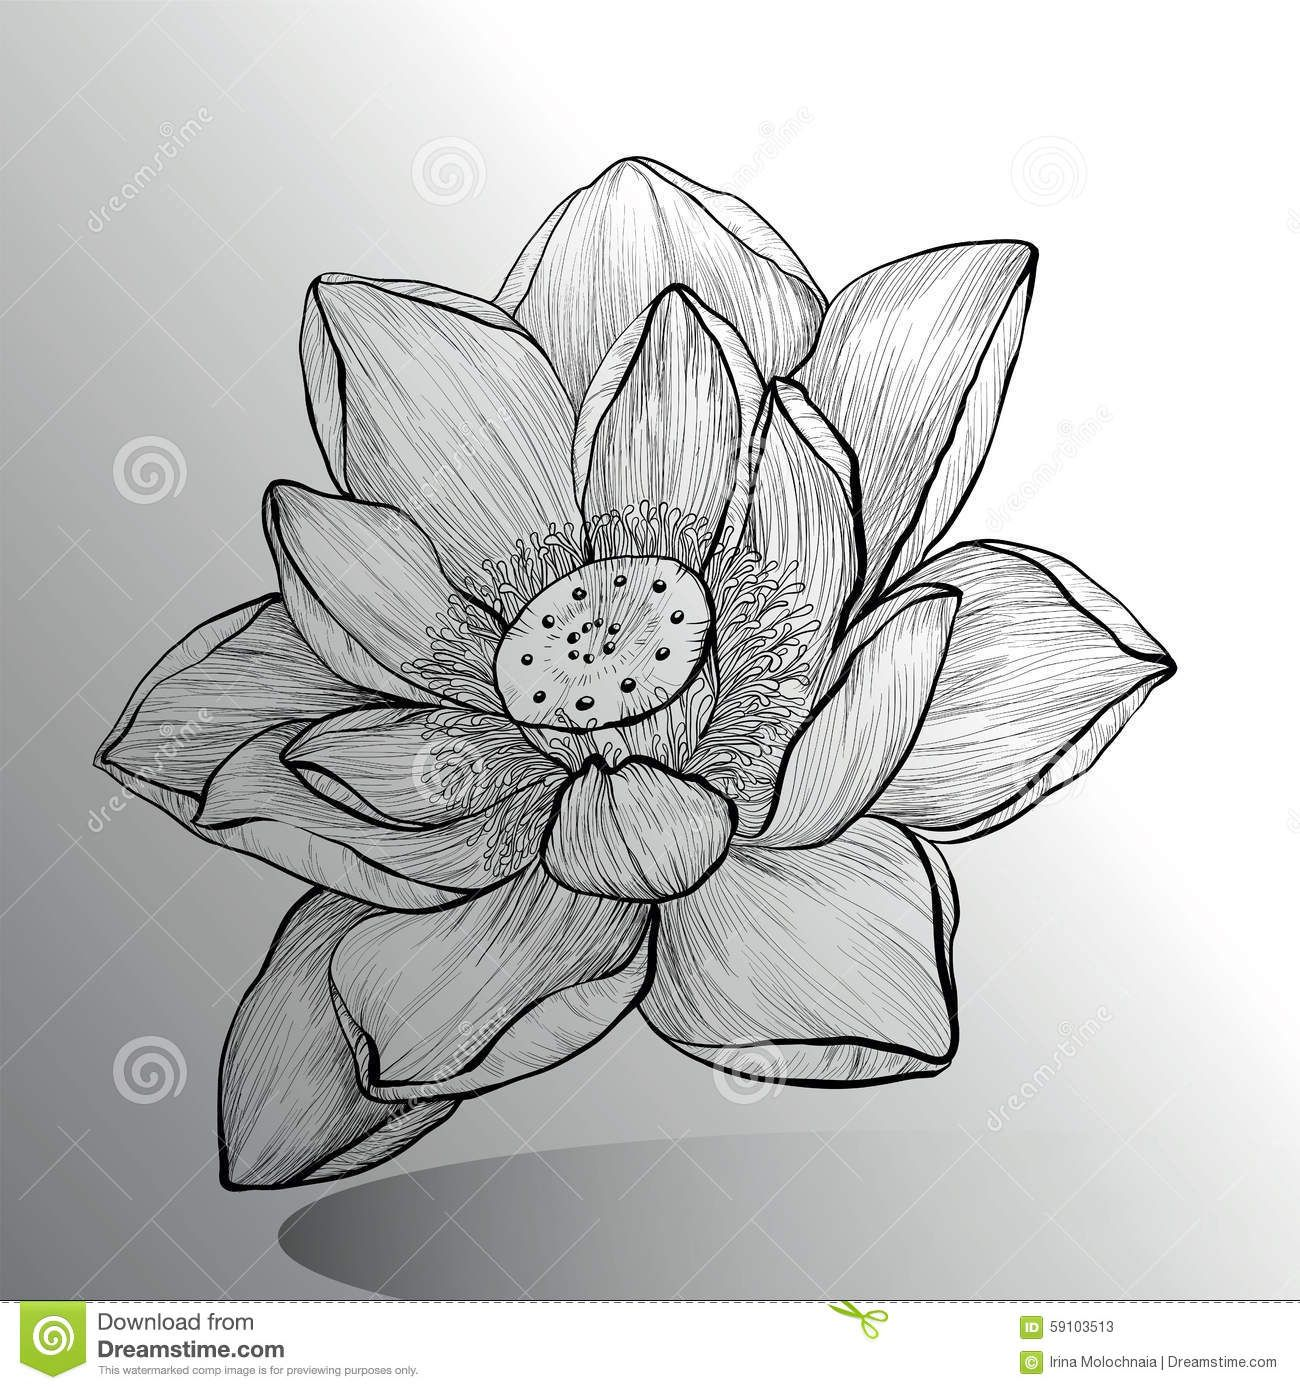 Pin By Loly On Sketchbook Pinterest Drawings Lotus And Flower